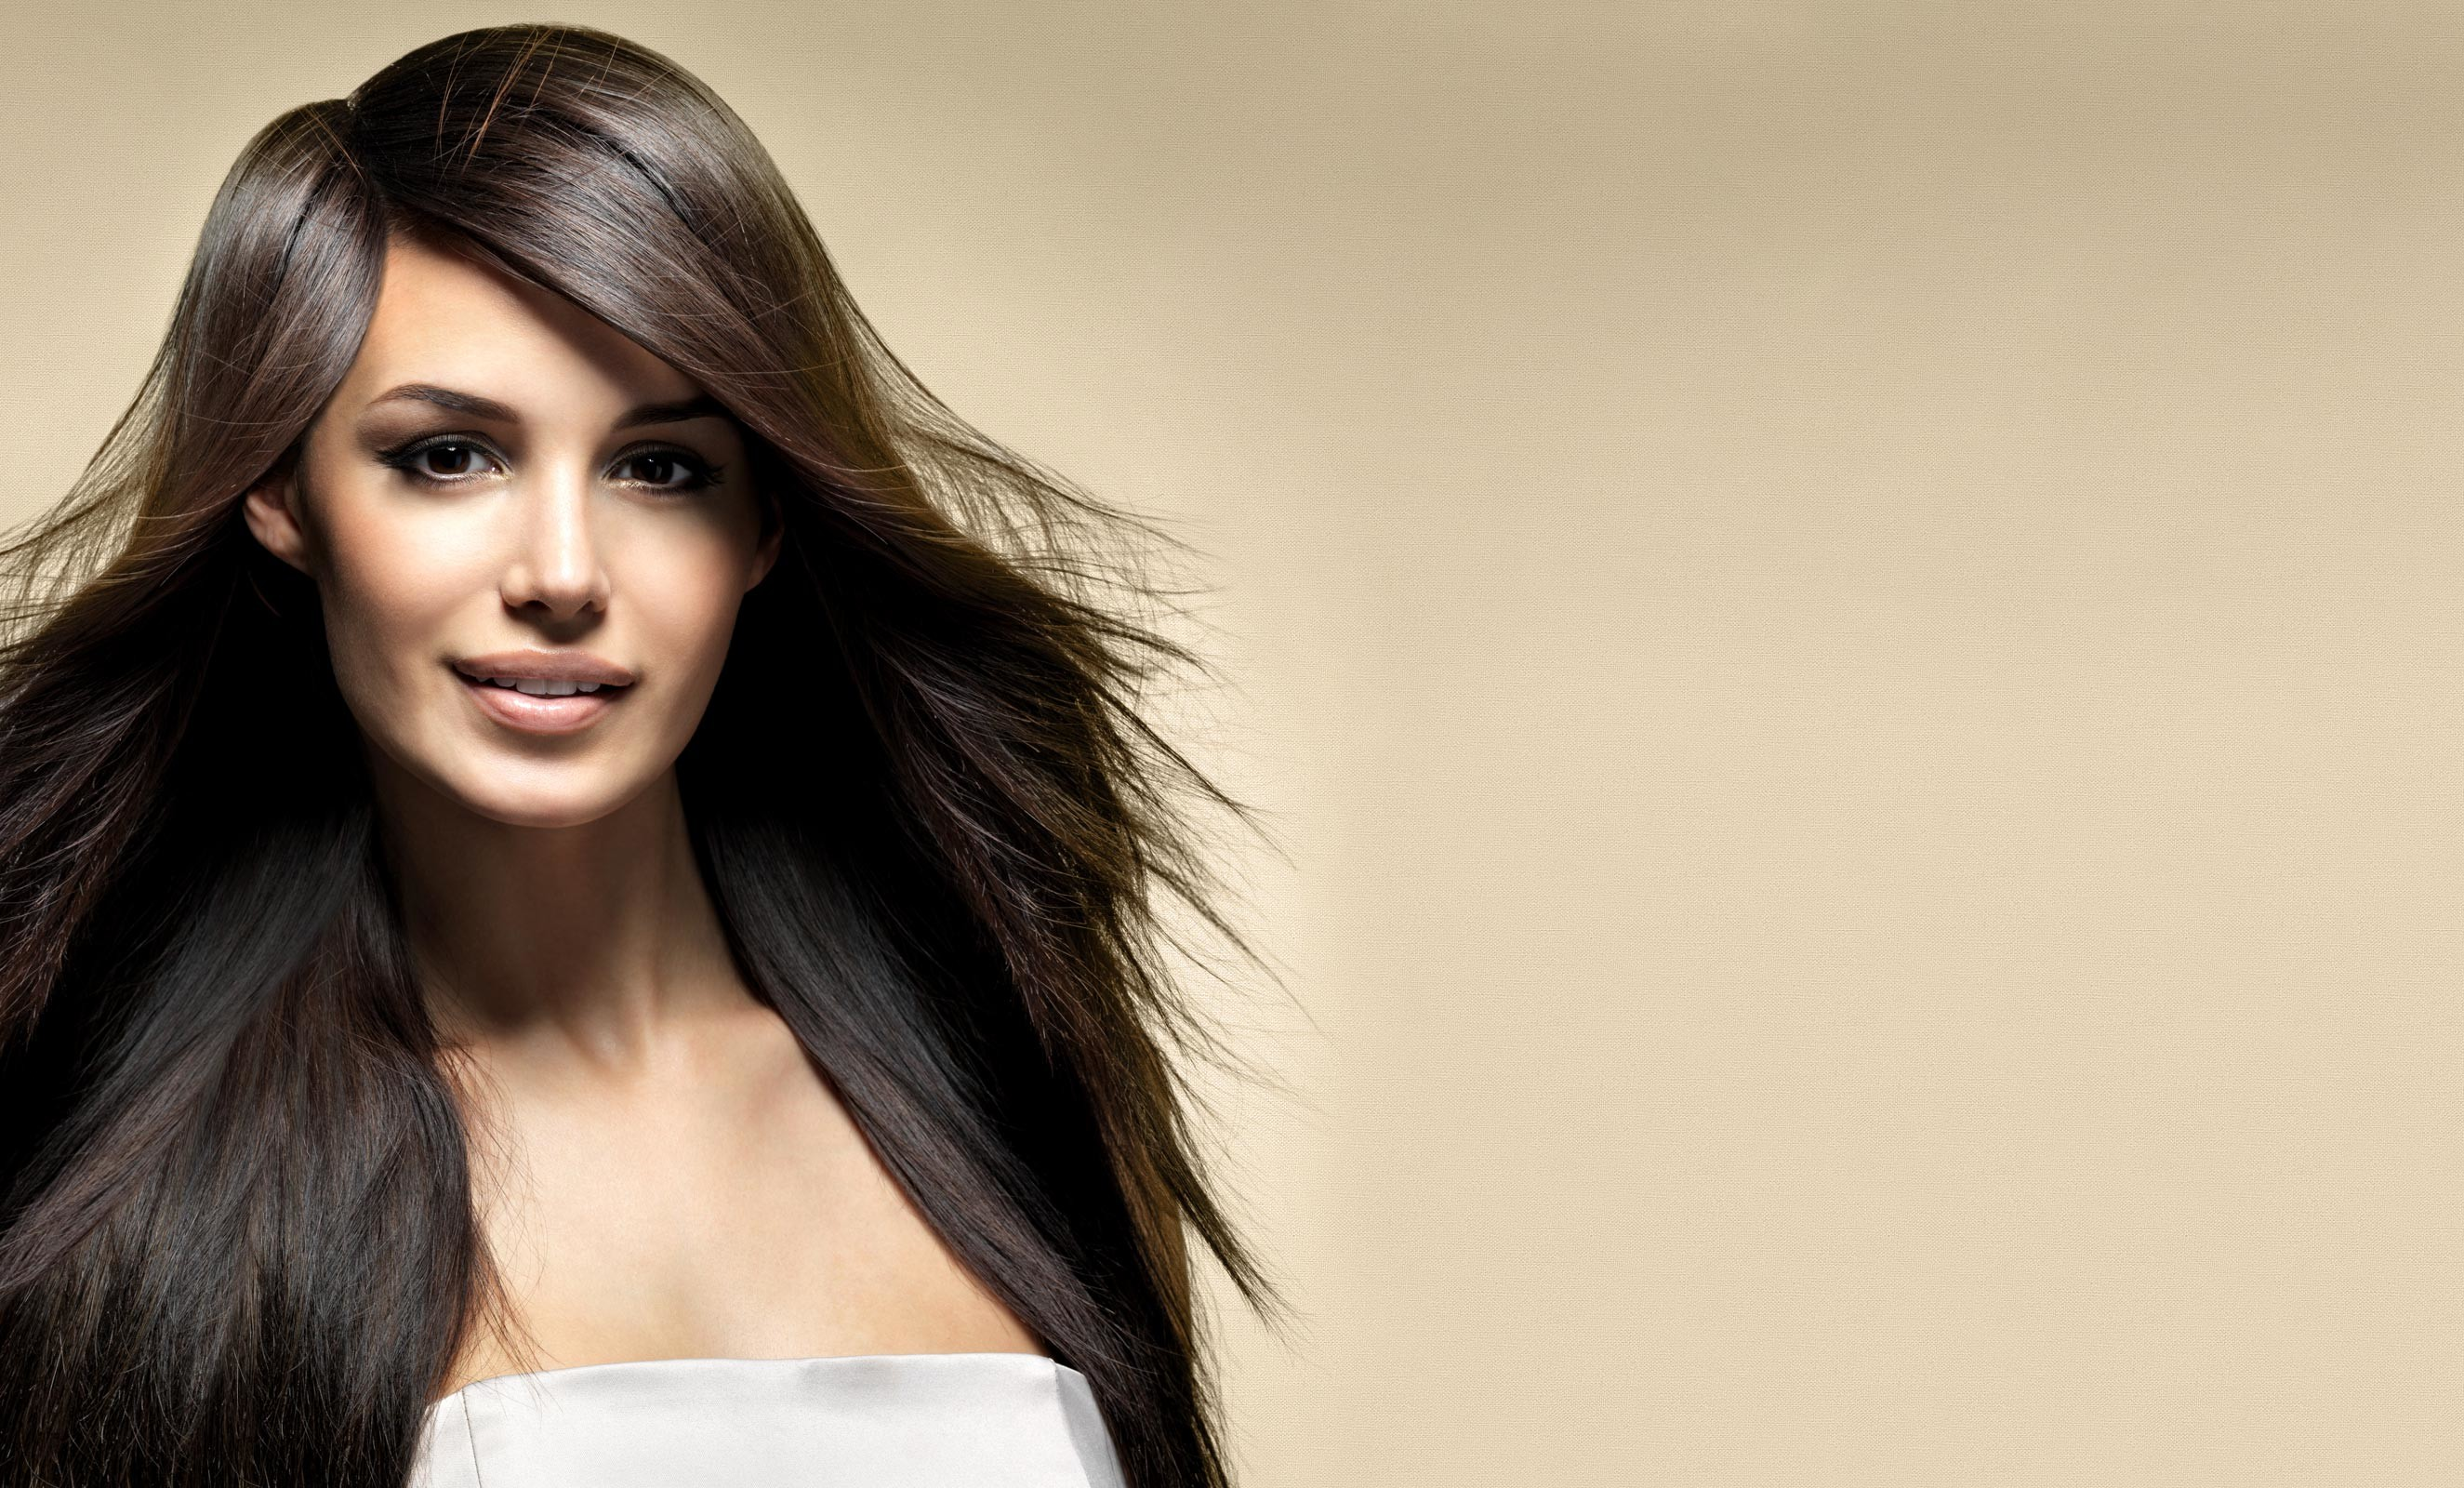 2650x1600 hair salon background displaying 17 images for hair salon background .